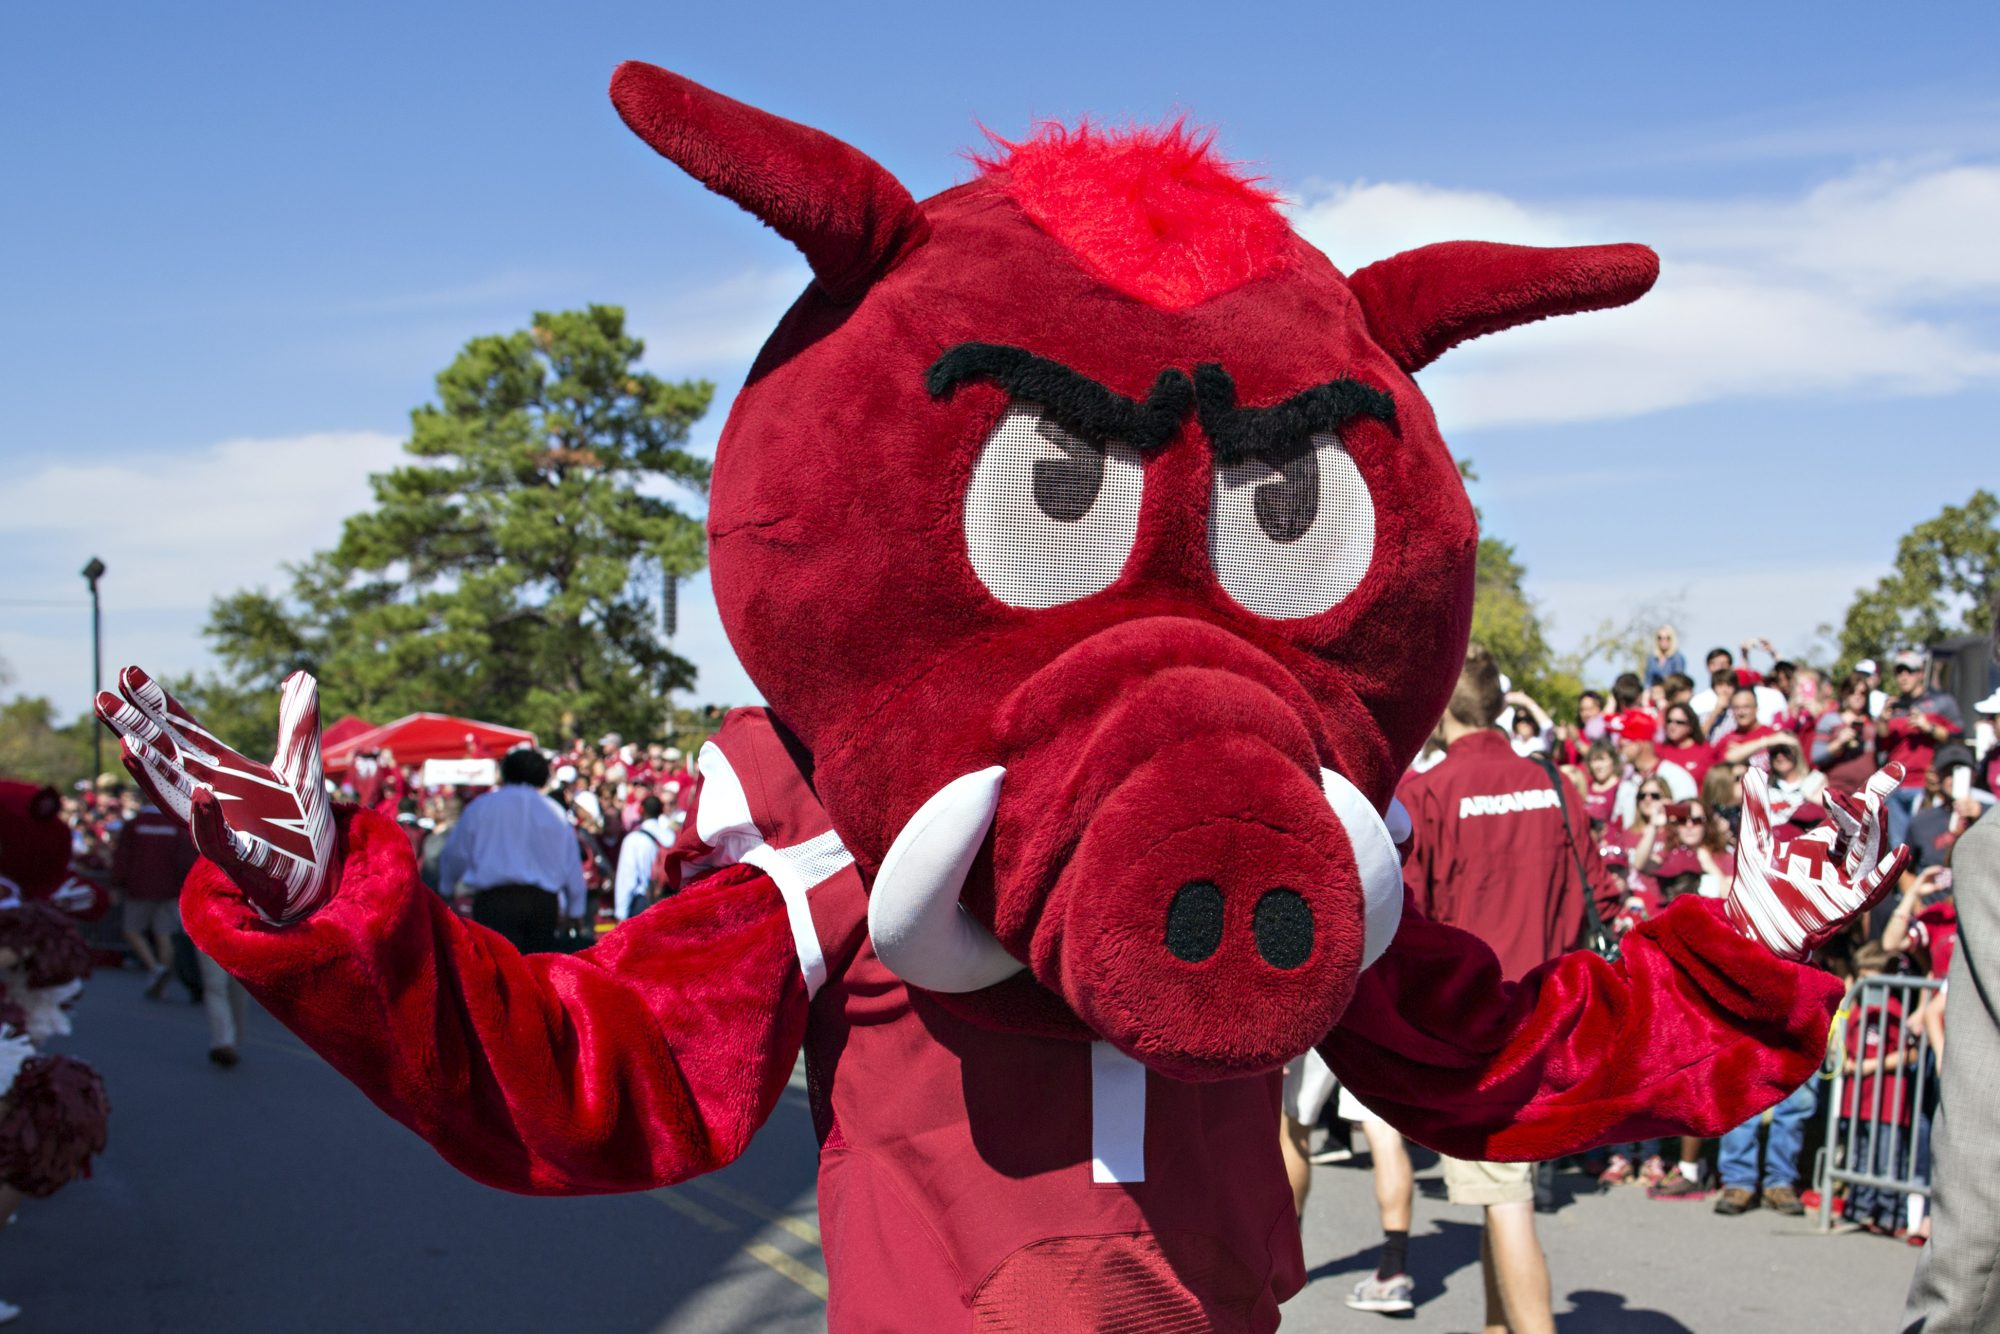 12. University of Arkansas